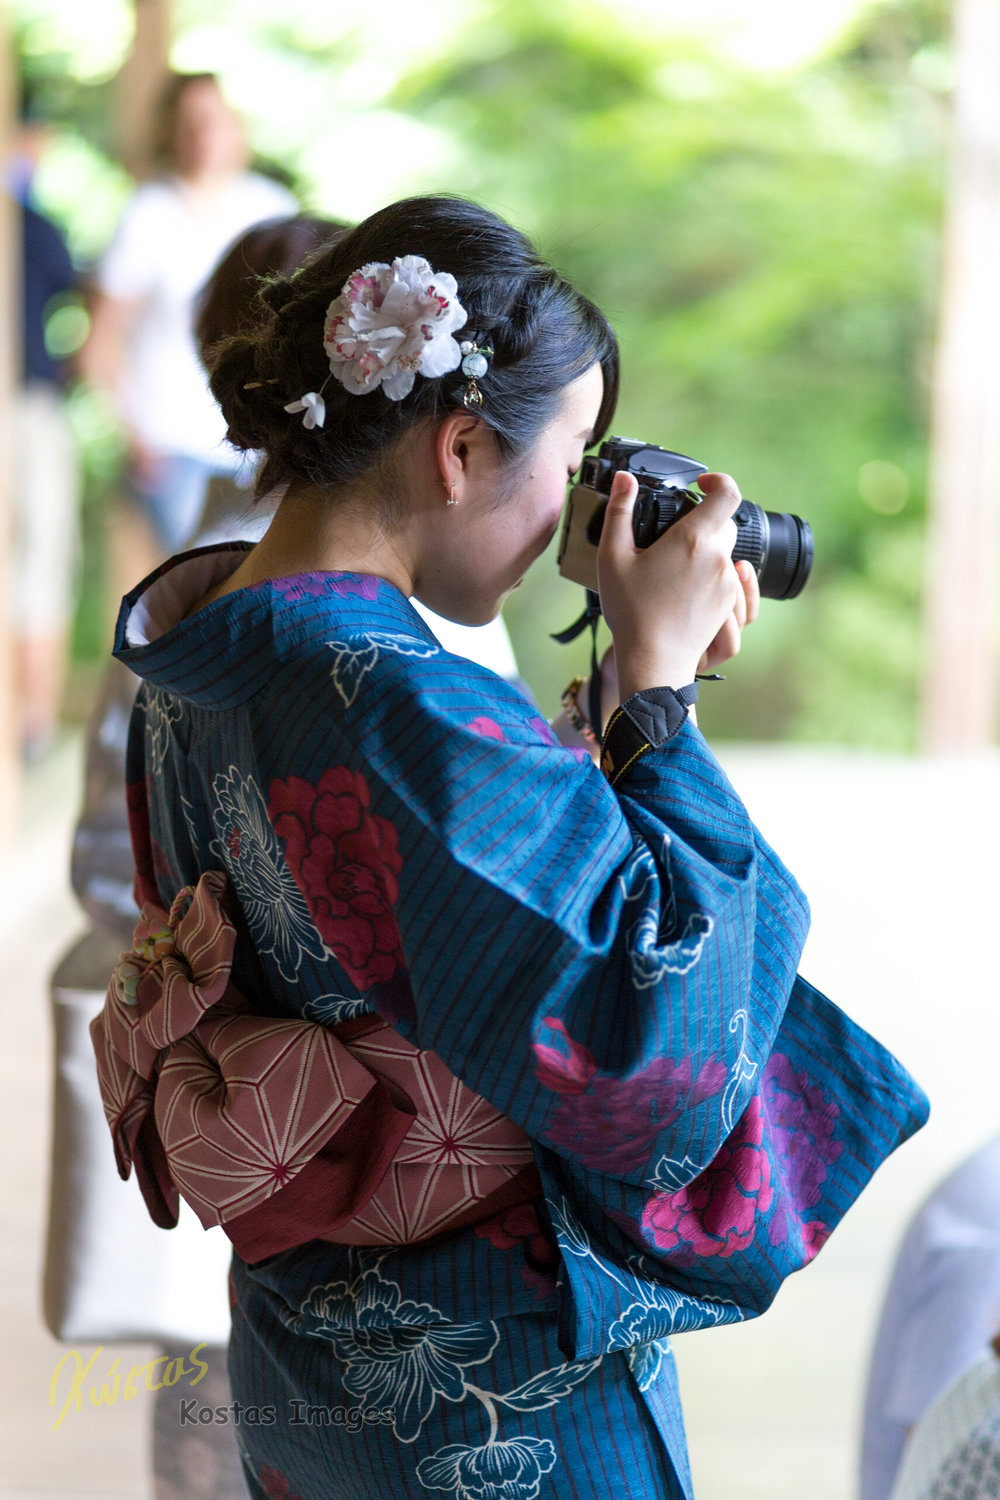 20160824-IMG_3024-Girl in Yukata.jpg